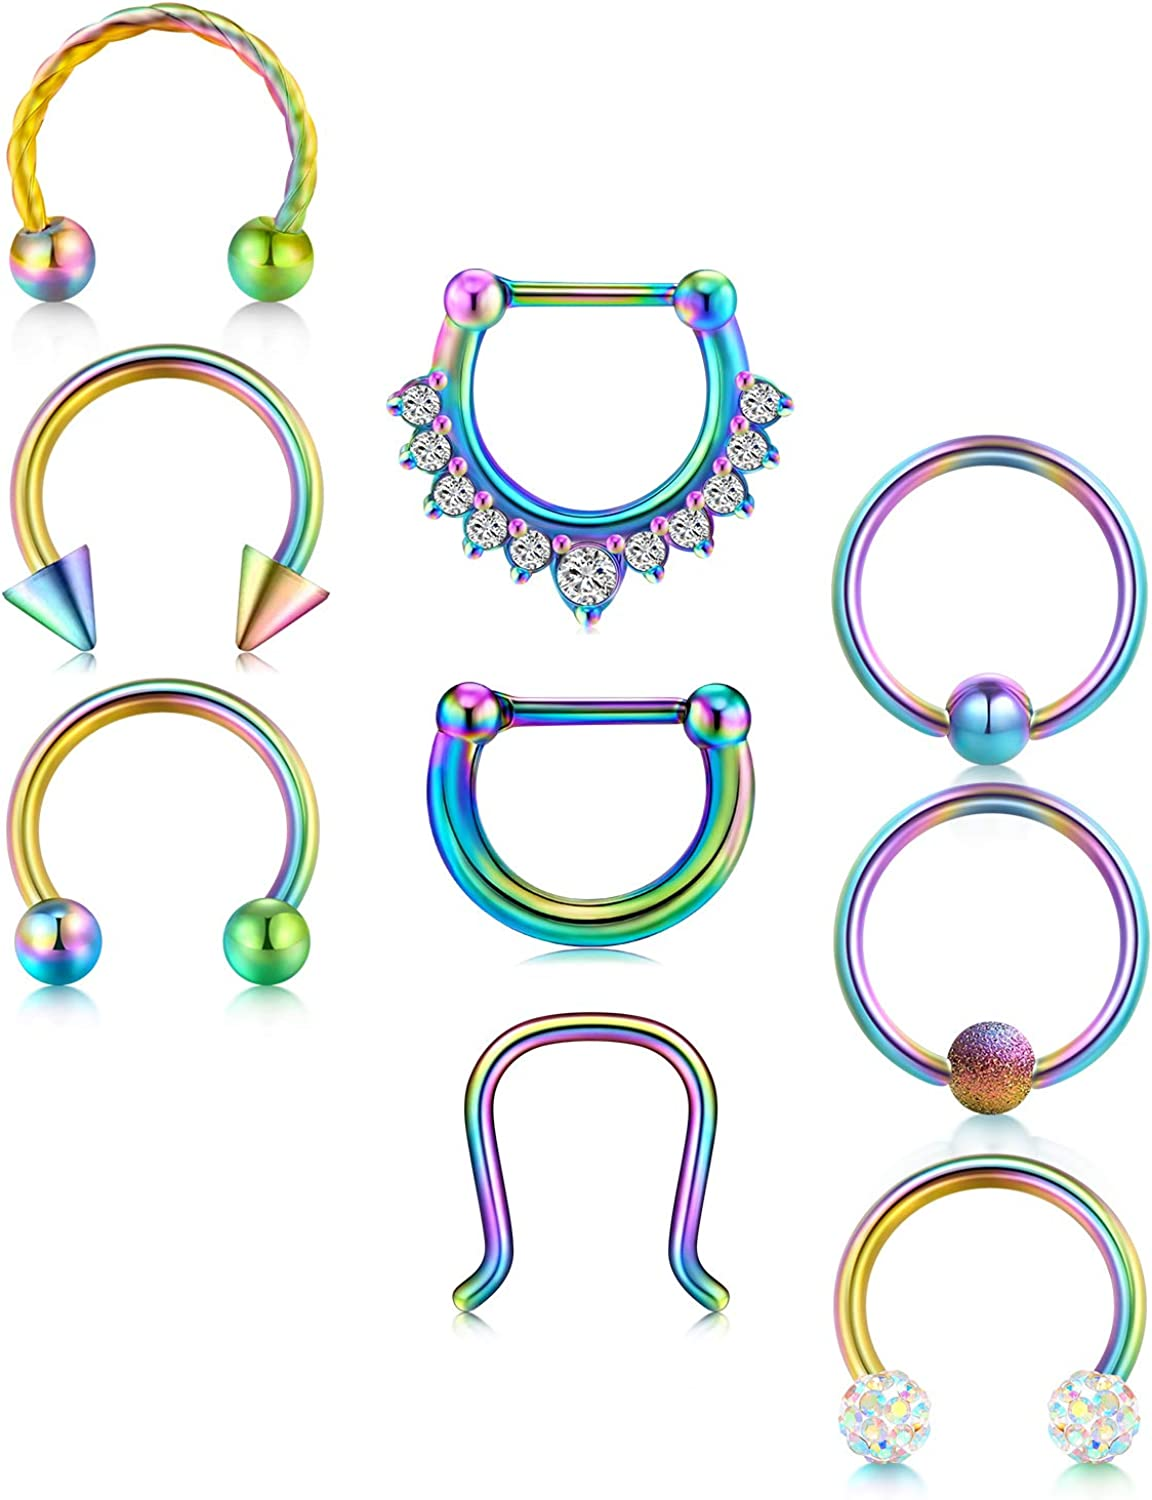 LAURITAMI 16G Septum Clicker Nose Rings Hoop Stainless Steel Cartilage Daith Tragus Helix Hinged Seamless Clicker Daith Rook Earrings Piercing Jewelry